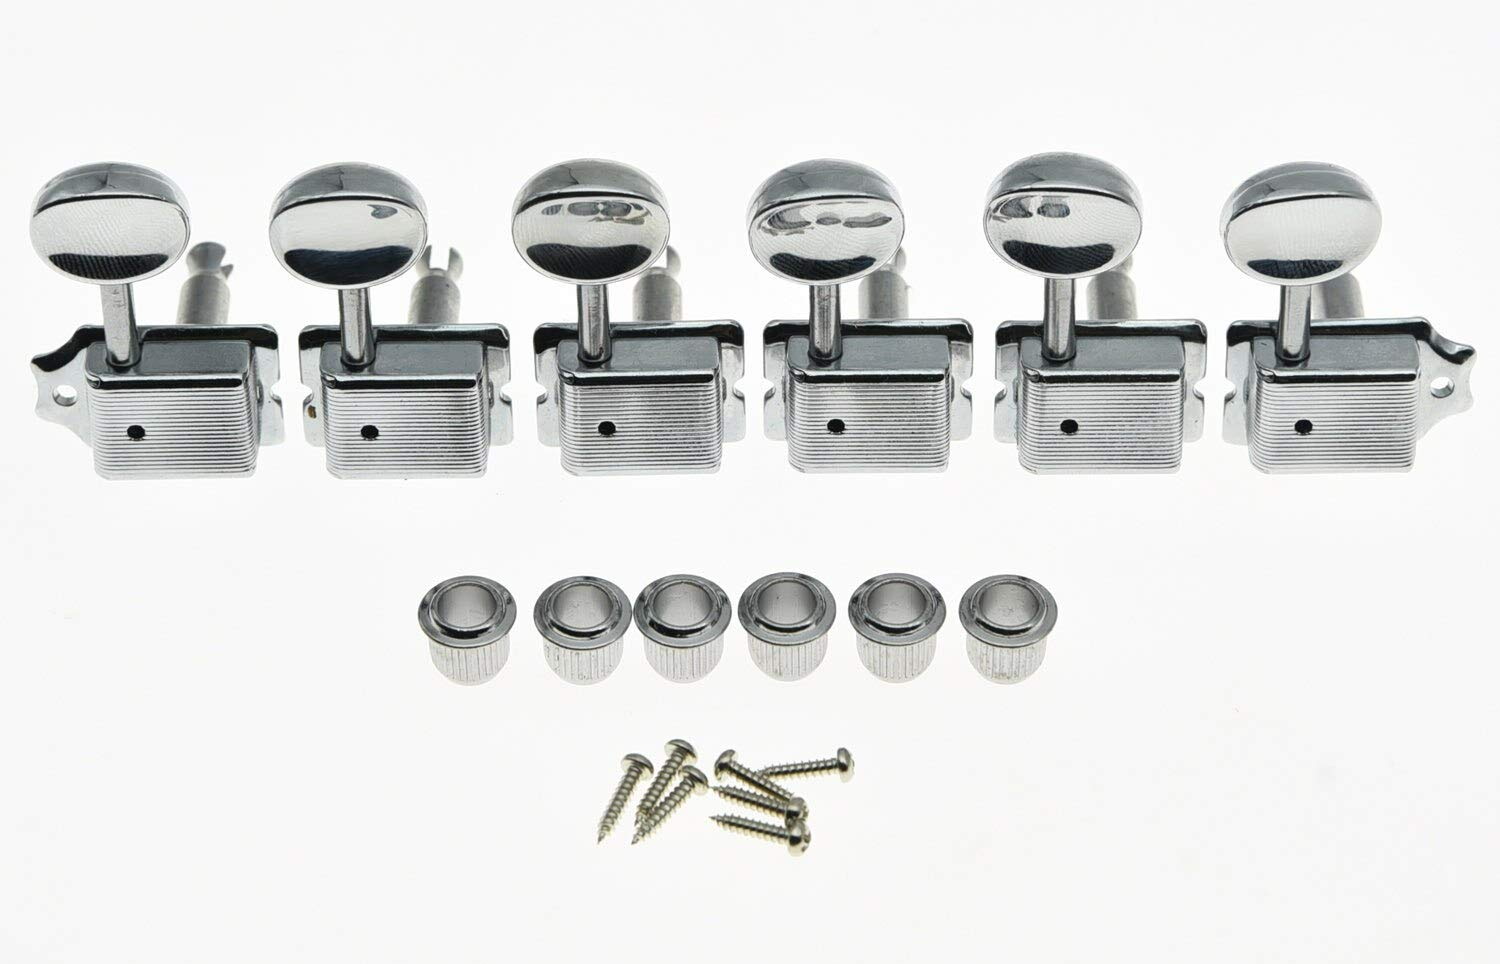 Guitars Special Deluxe price for a limited time Parts Vintage Guitar Tuning Tuners Keys f Machine